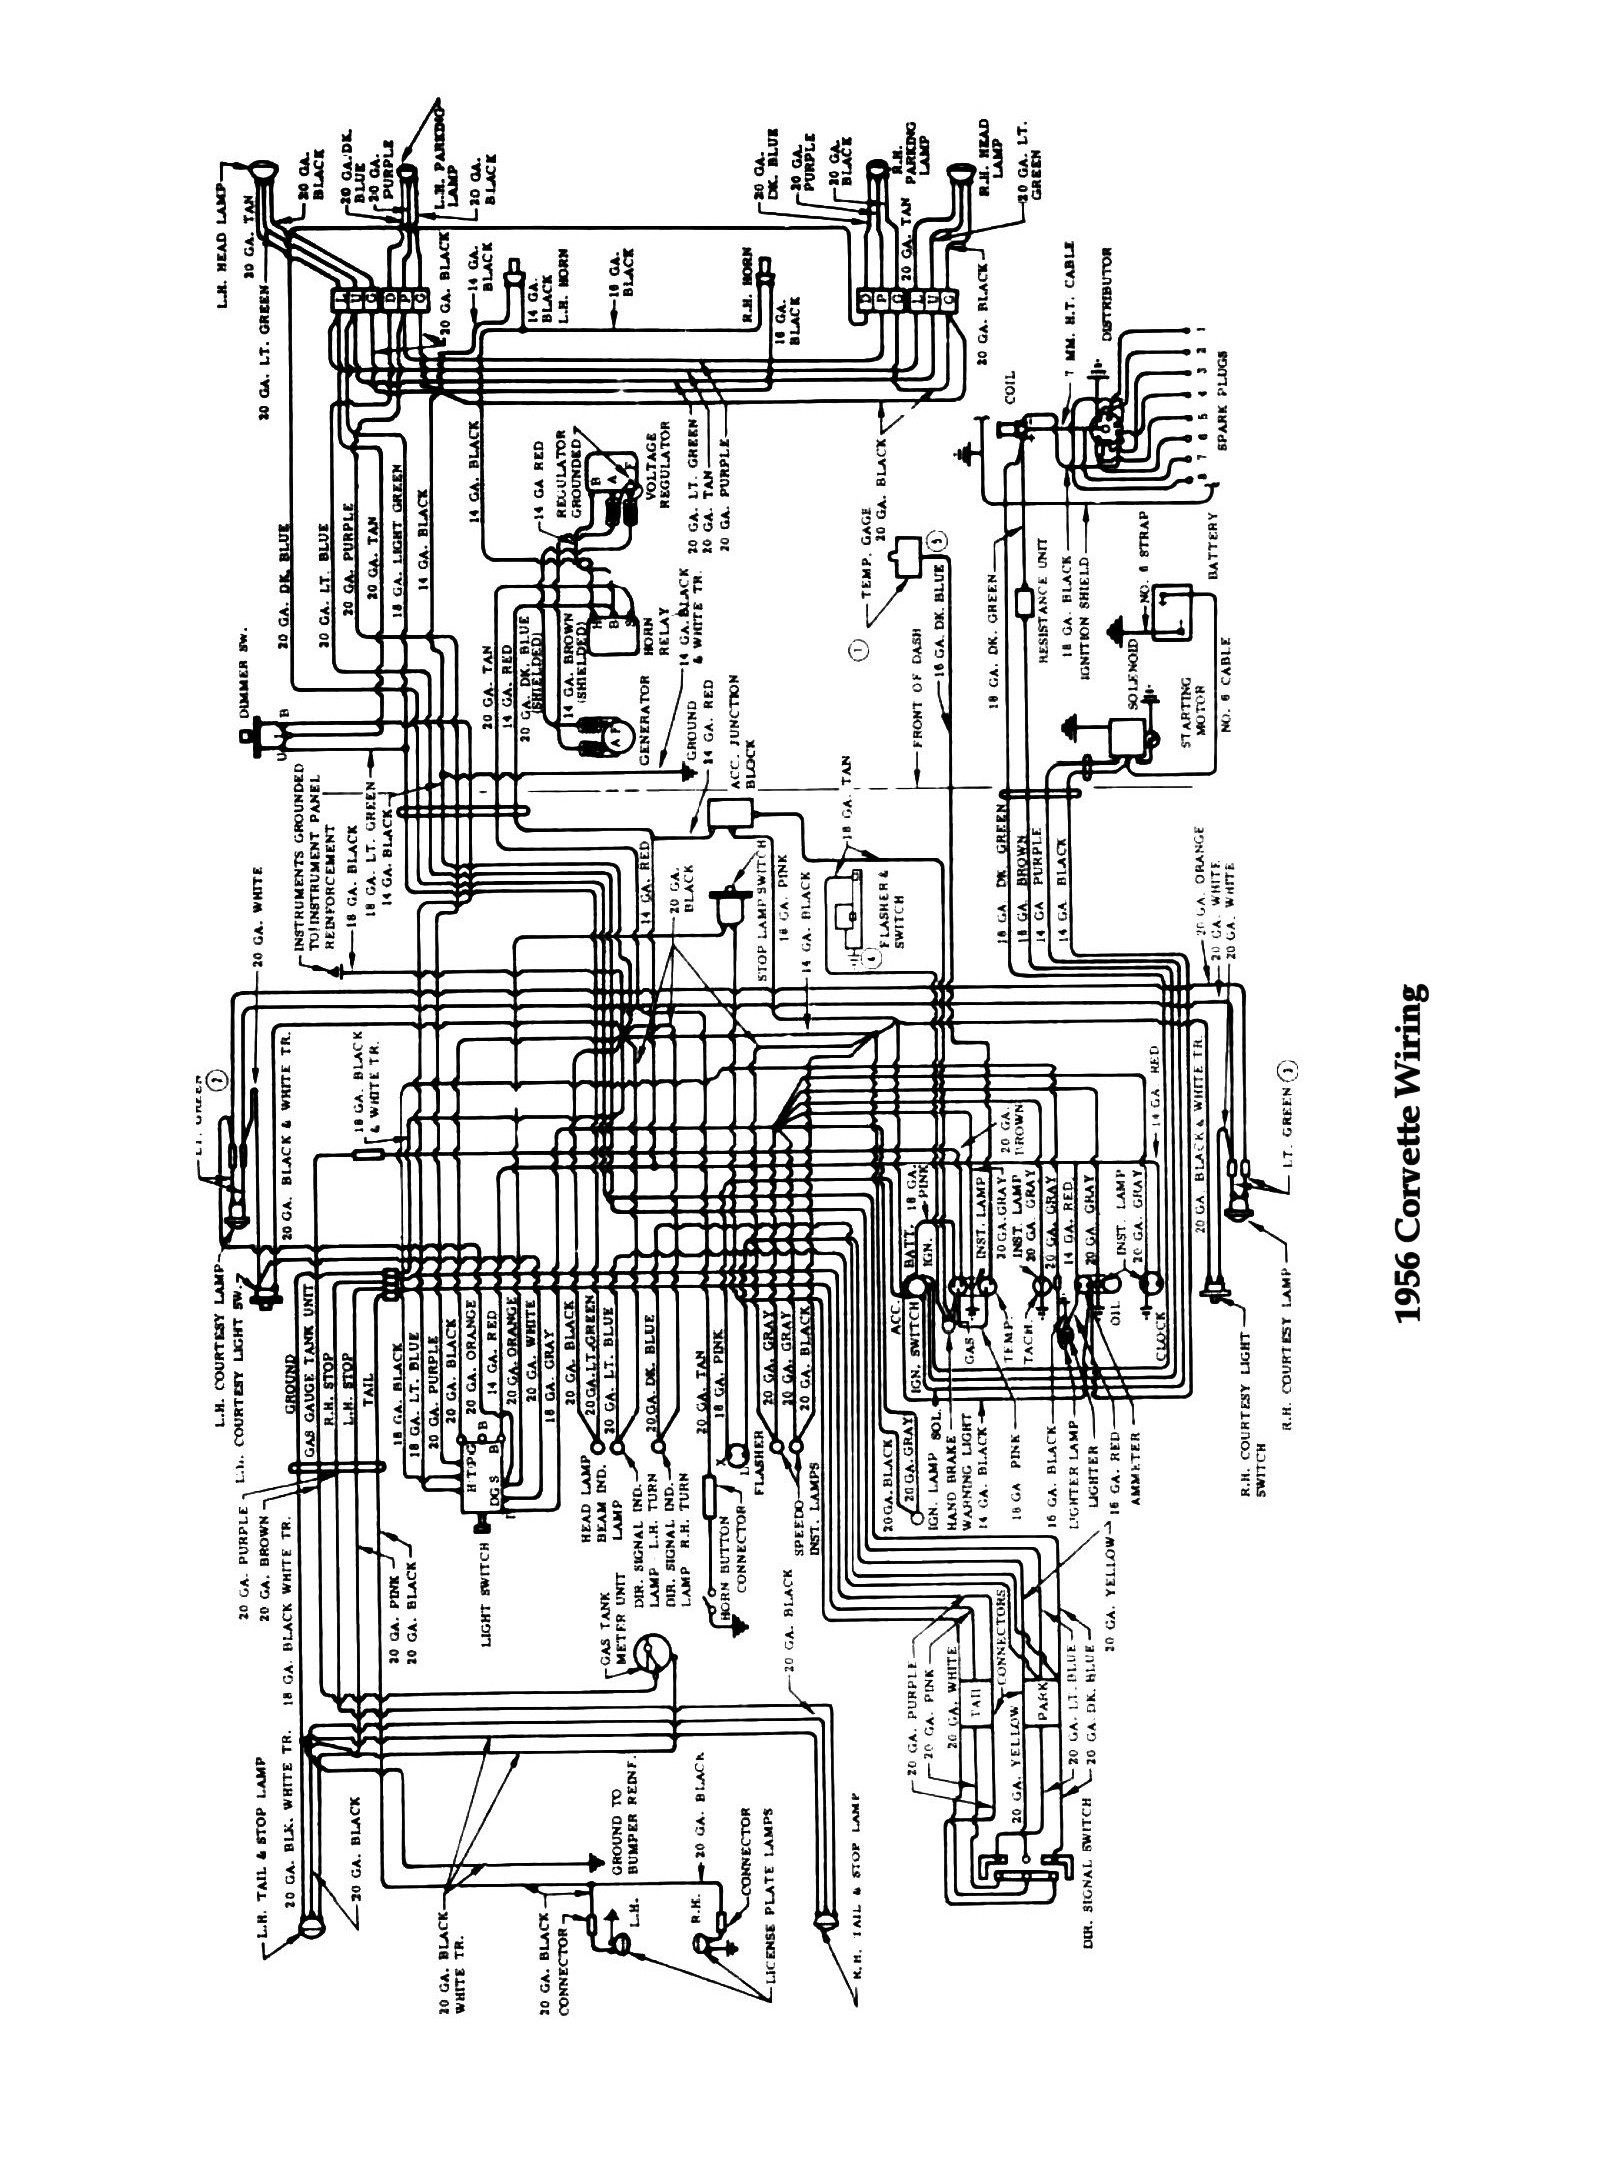 1975 Corvette Electrical Diagram Wiring Schematic.html